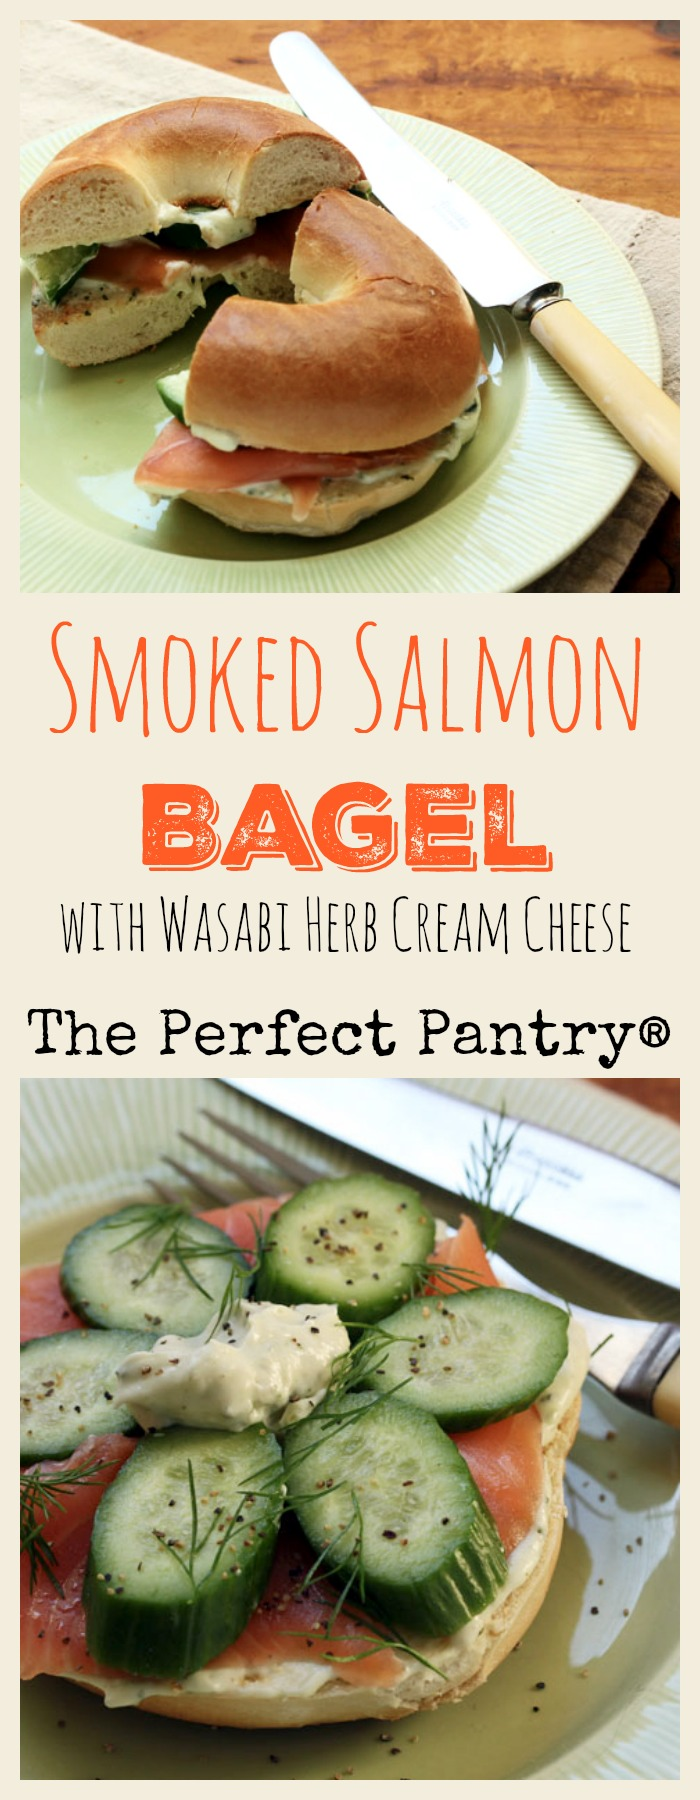 Smoked salmon bagel with amazing wasabi herb cream cheese, a brunch delight!